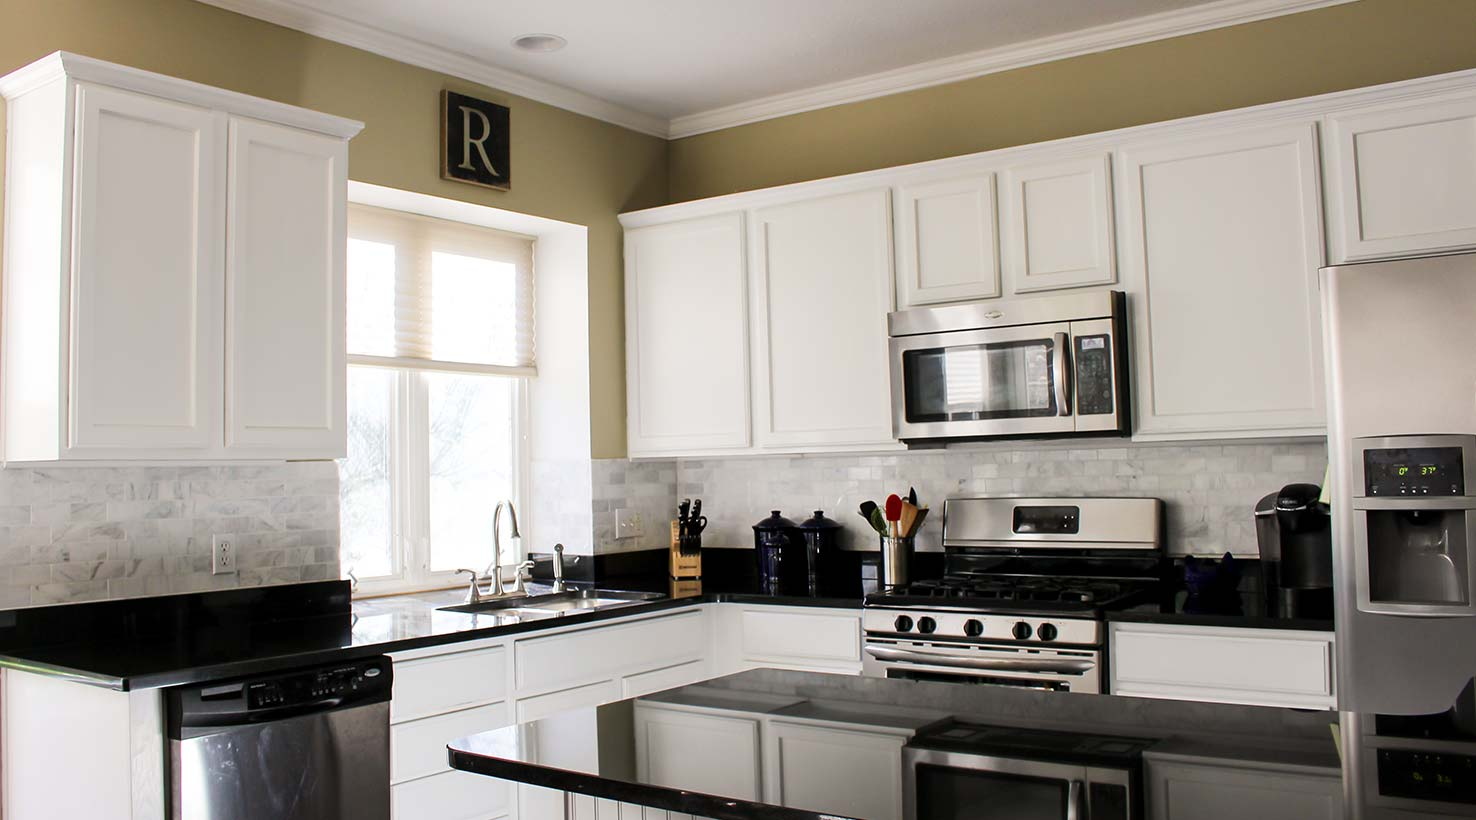 Kitchen color inspiration gallery sherwin williams for Best kitchen paint colors